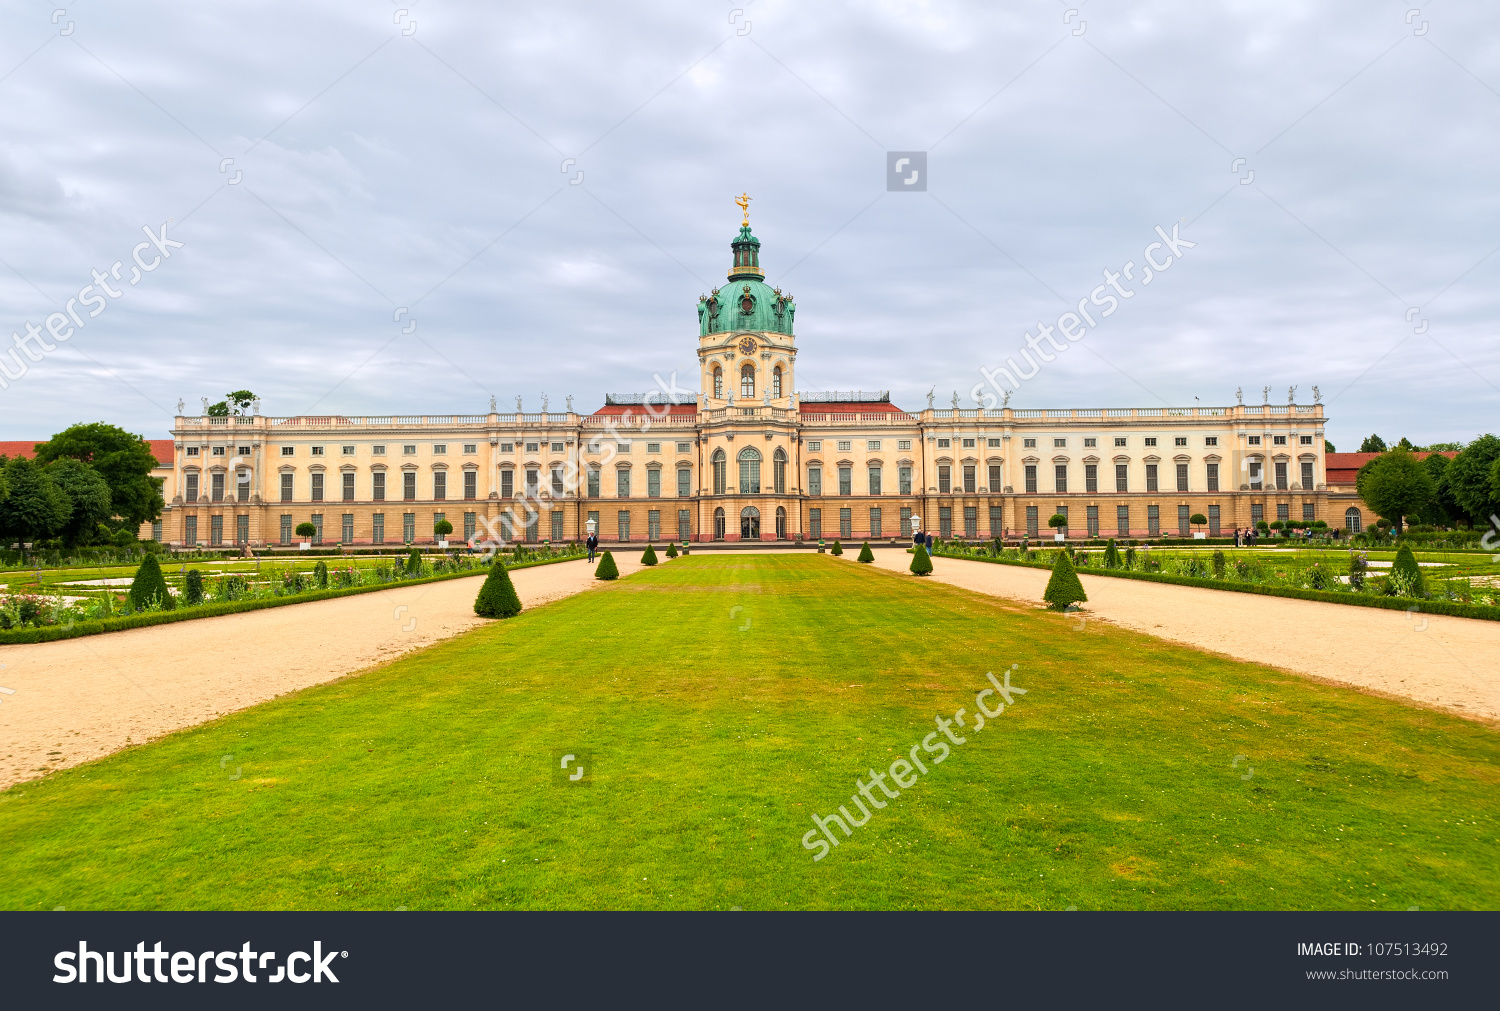 English Garden Royal Palace Charlottenburg Berlin Stock Photo.